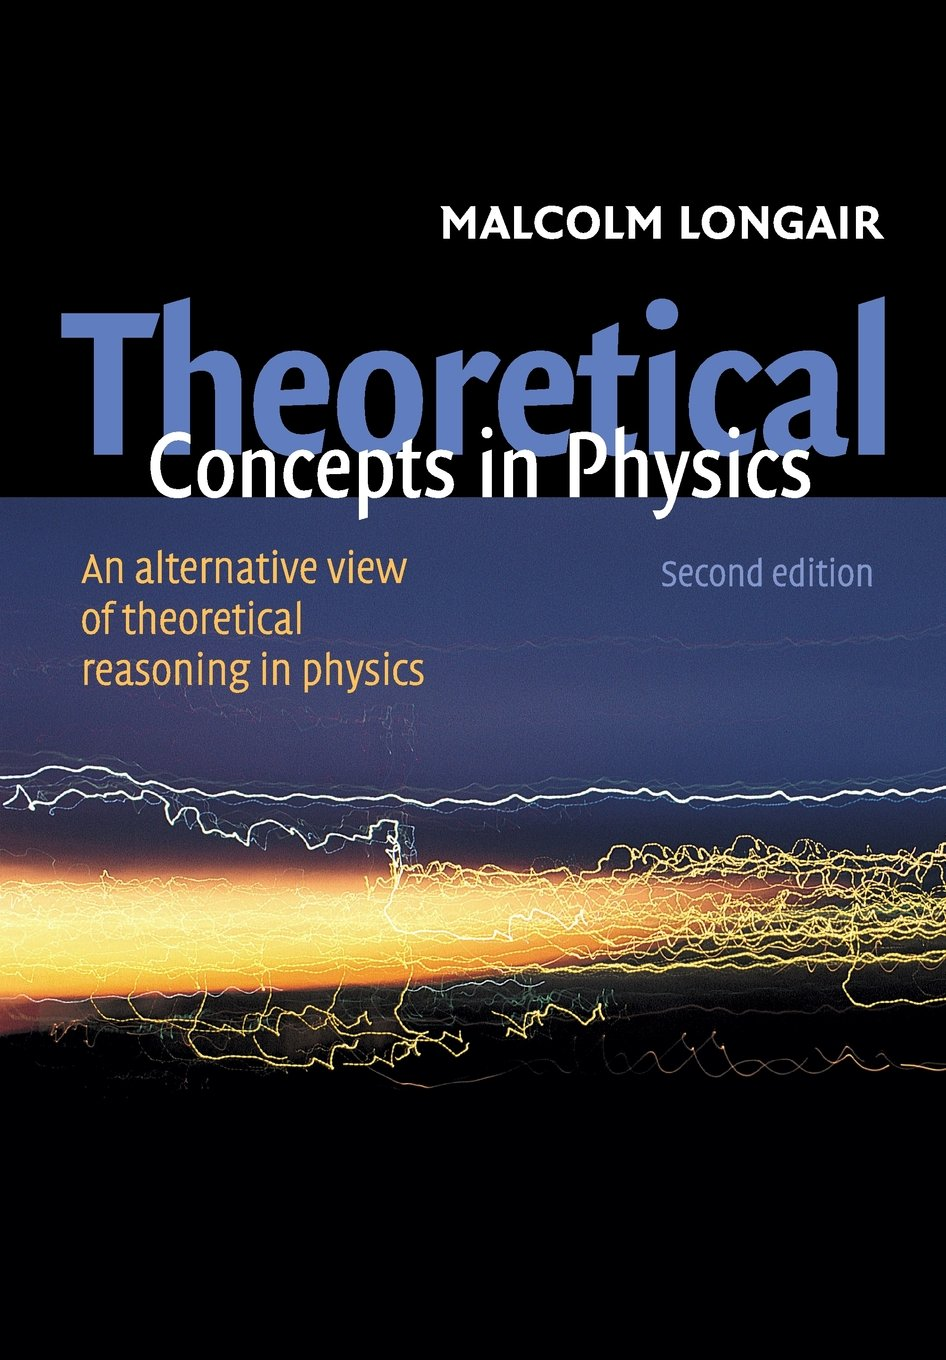 Theoretical Concepts in Physics, Second Edition: An Alternative View of Theoretical Reasoning in Physics